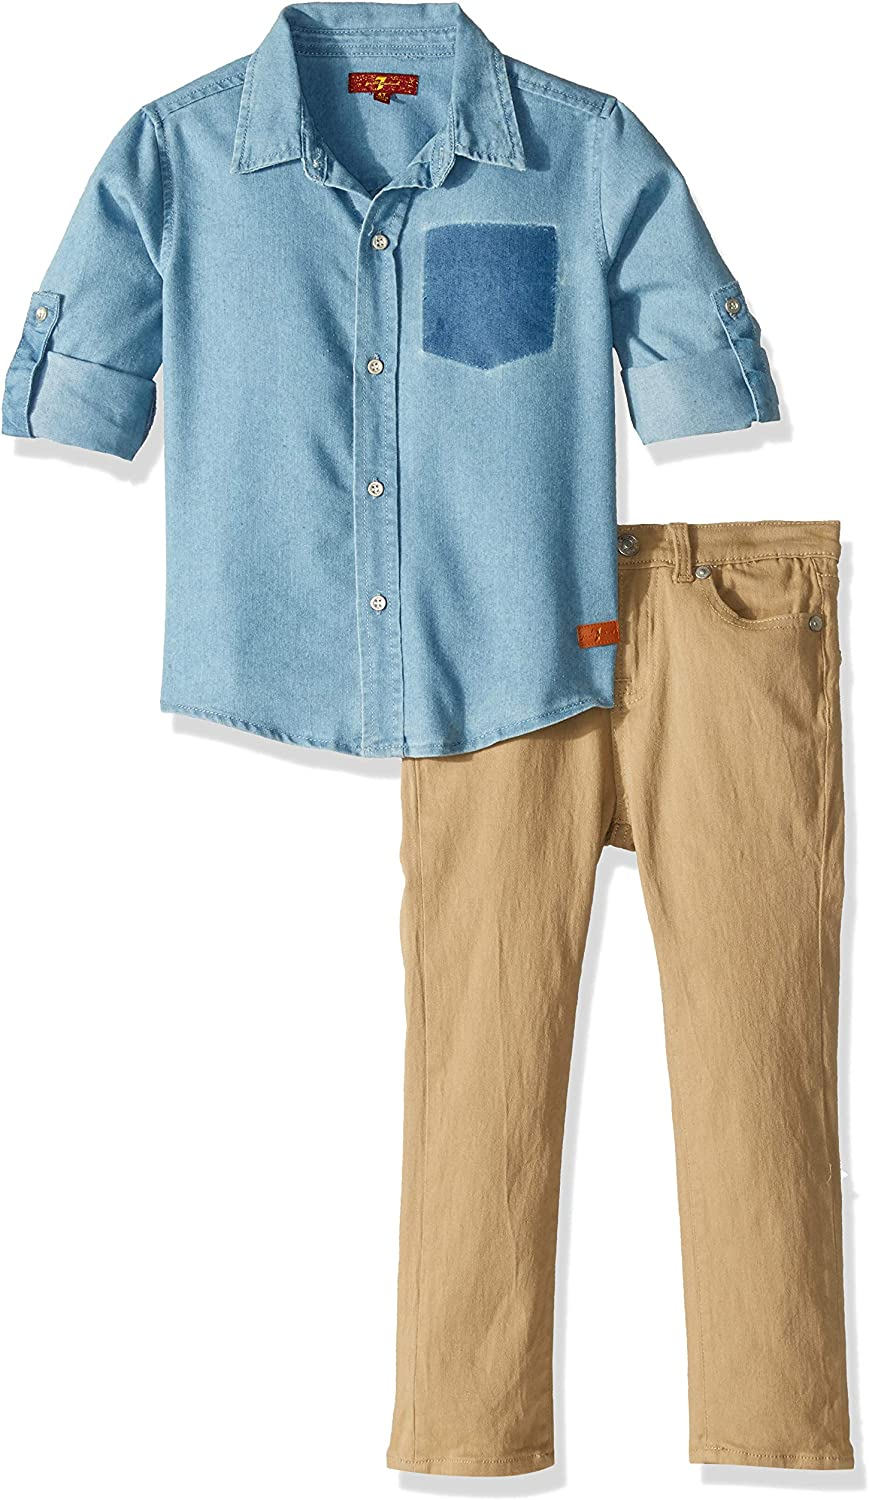 7 For All Mankind Boys Short Sleeve Washed Twill Sport Shirt